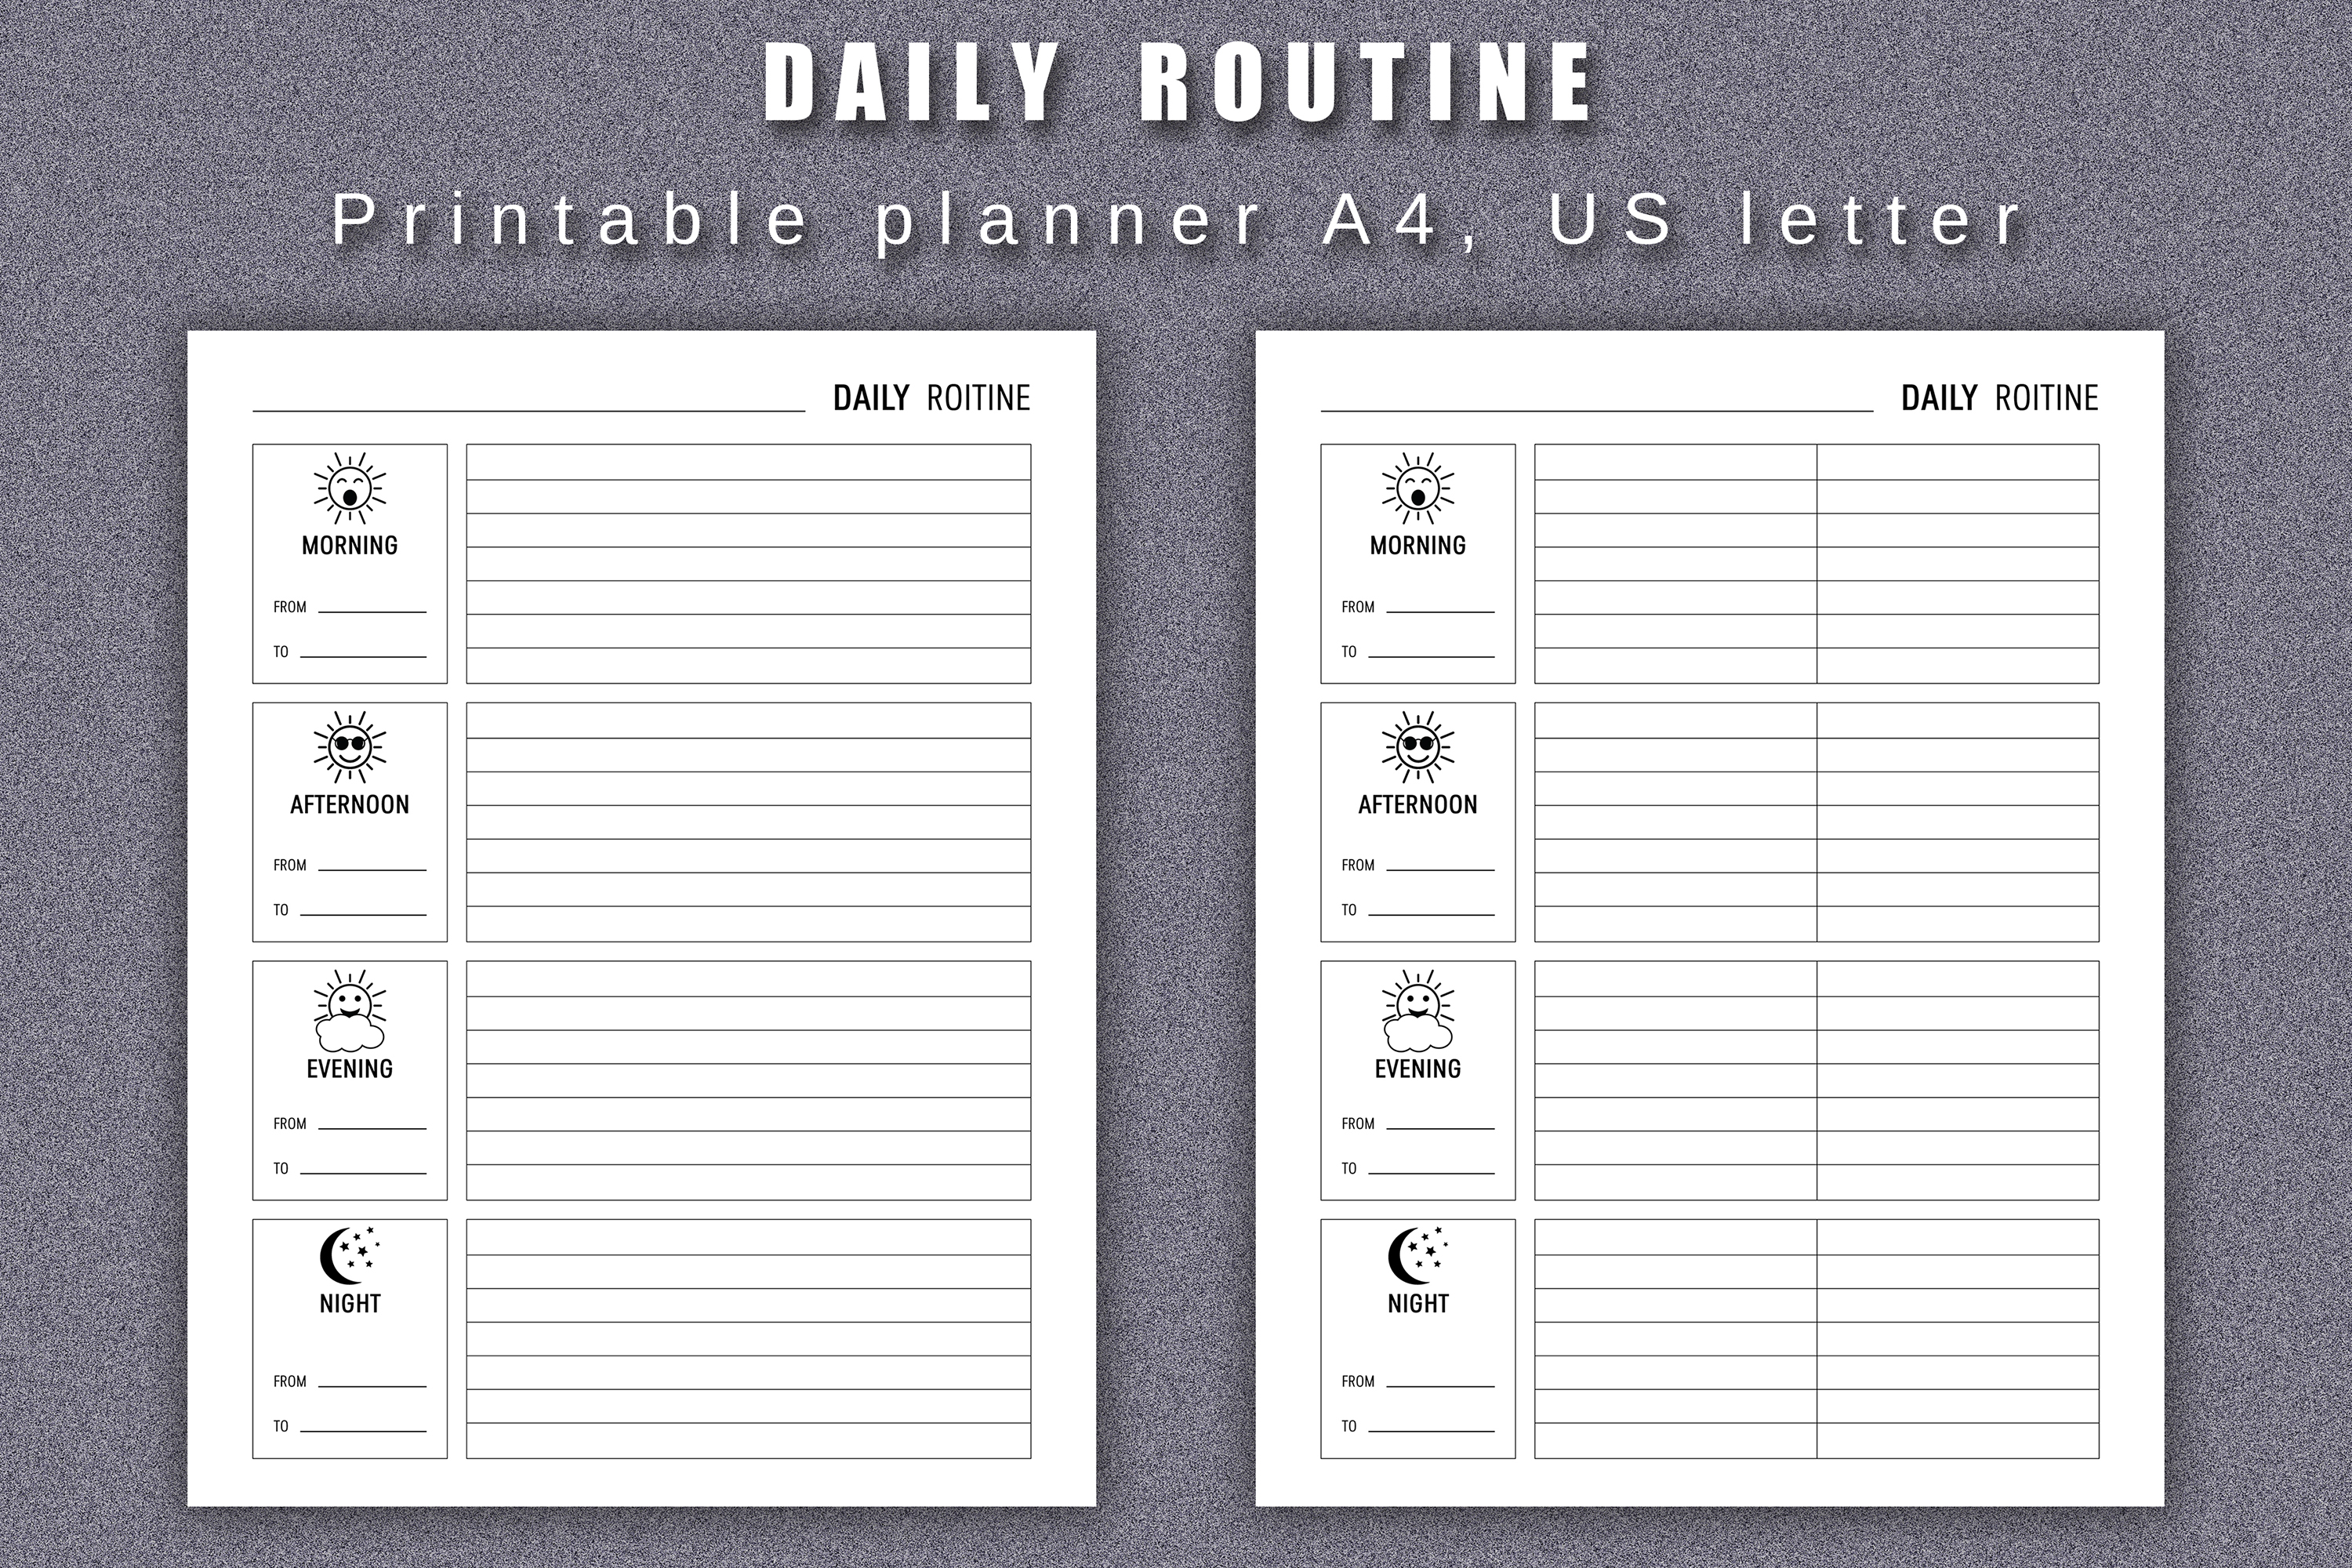 Daily Routine Planner Printable example image 2